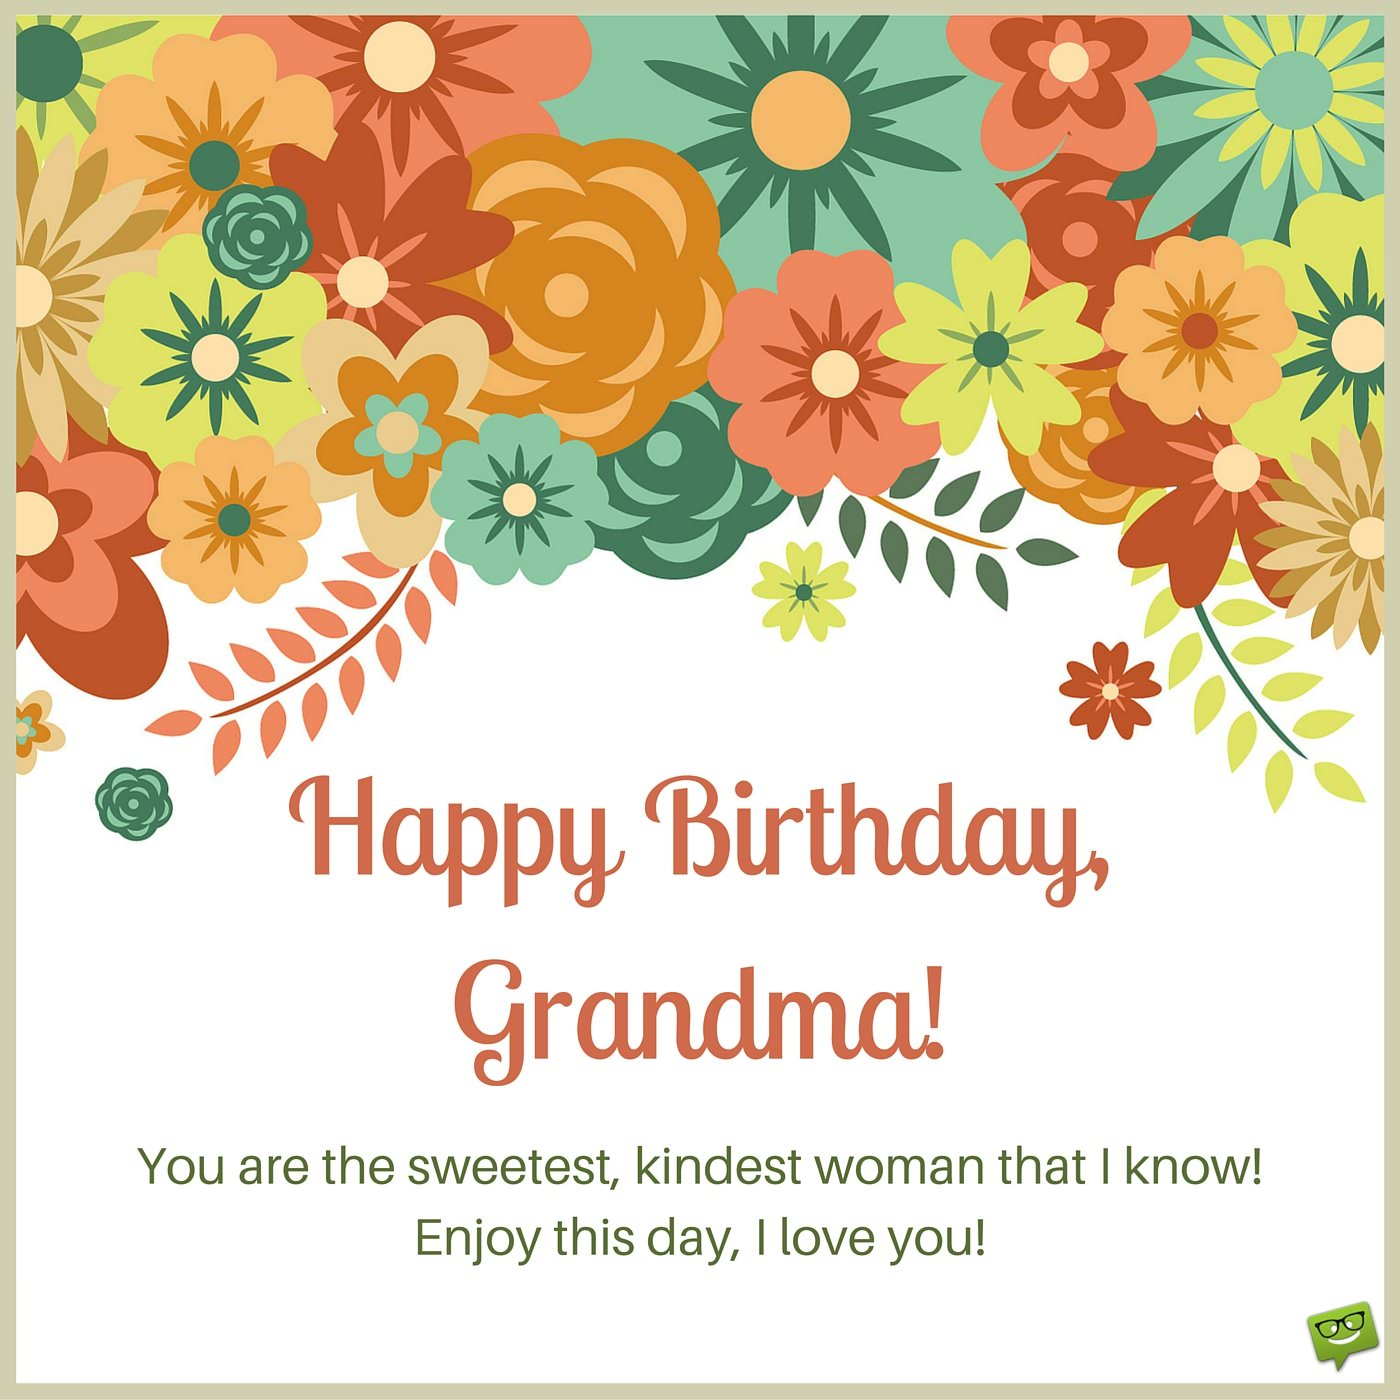 Birthday Wish For Grandma On Card With Drawings Of Colorful Flowers